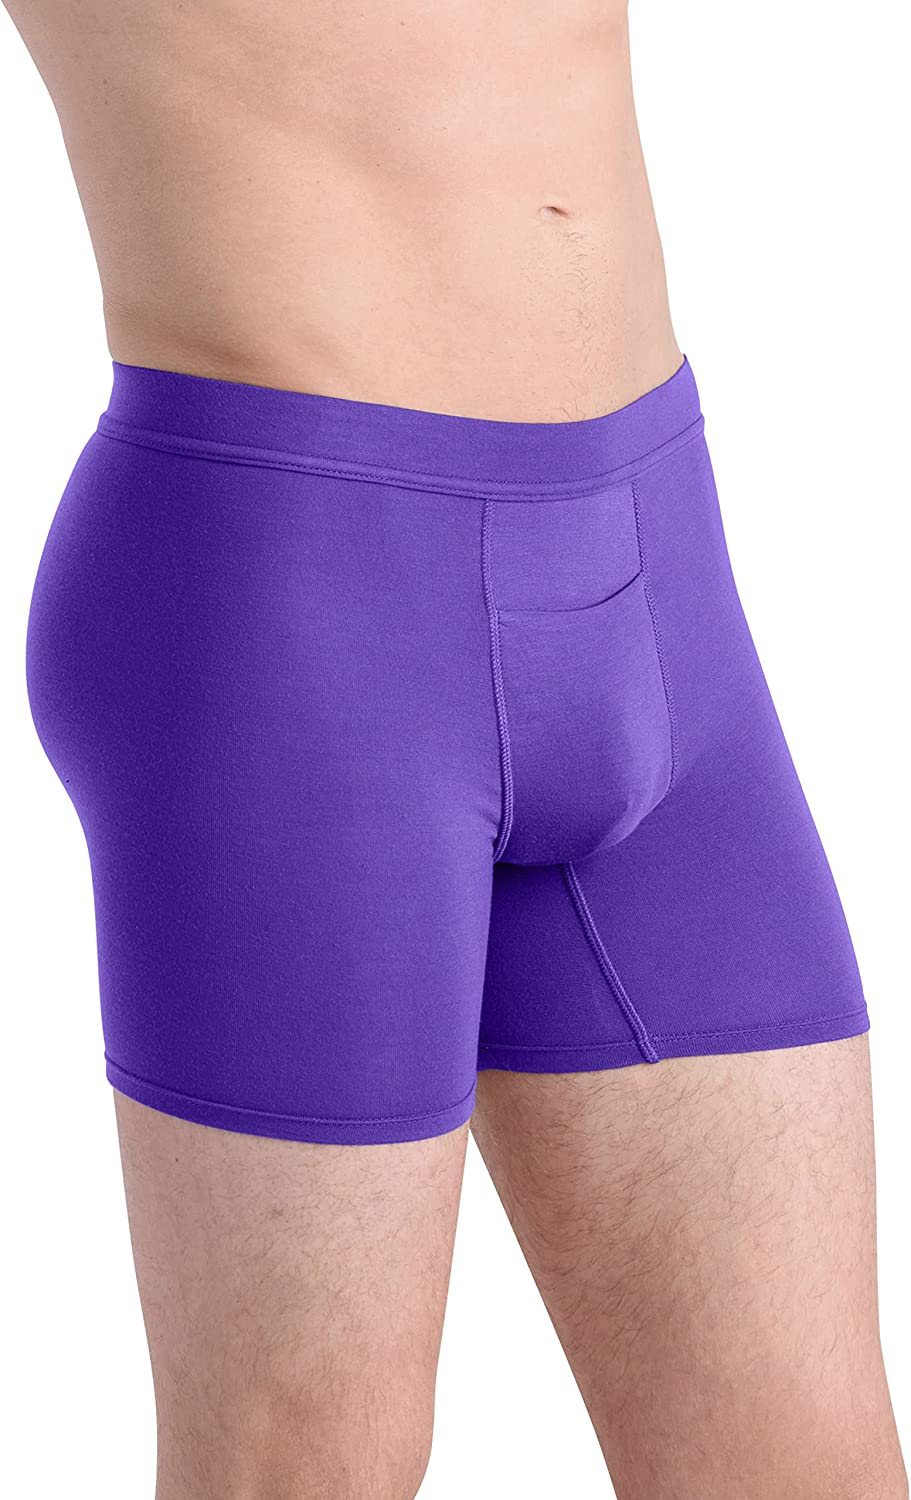 COMFORTABLE CLUB Mens Bliss Modal Microfiber Boxer Briefs Underwear with Fly